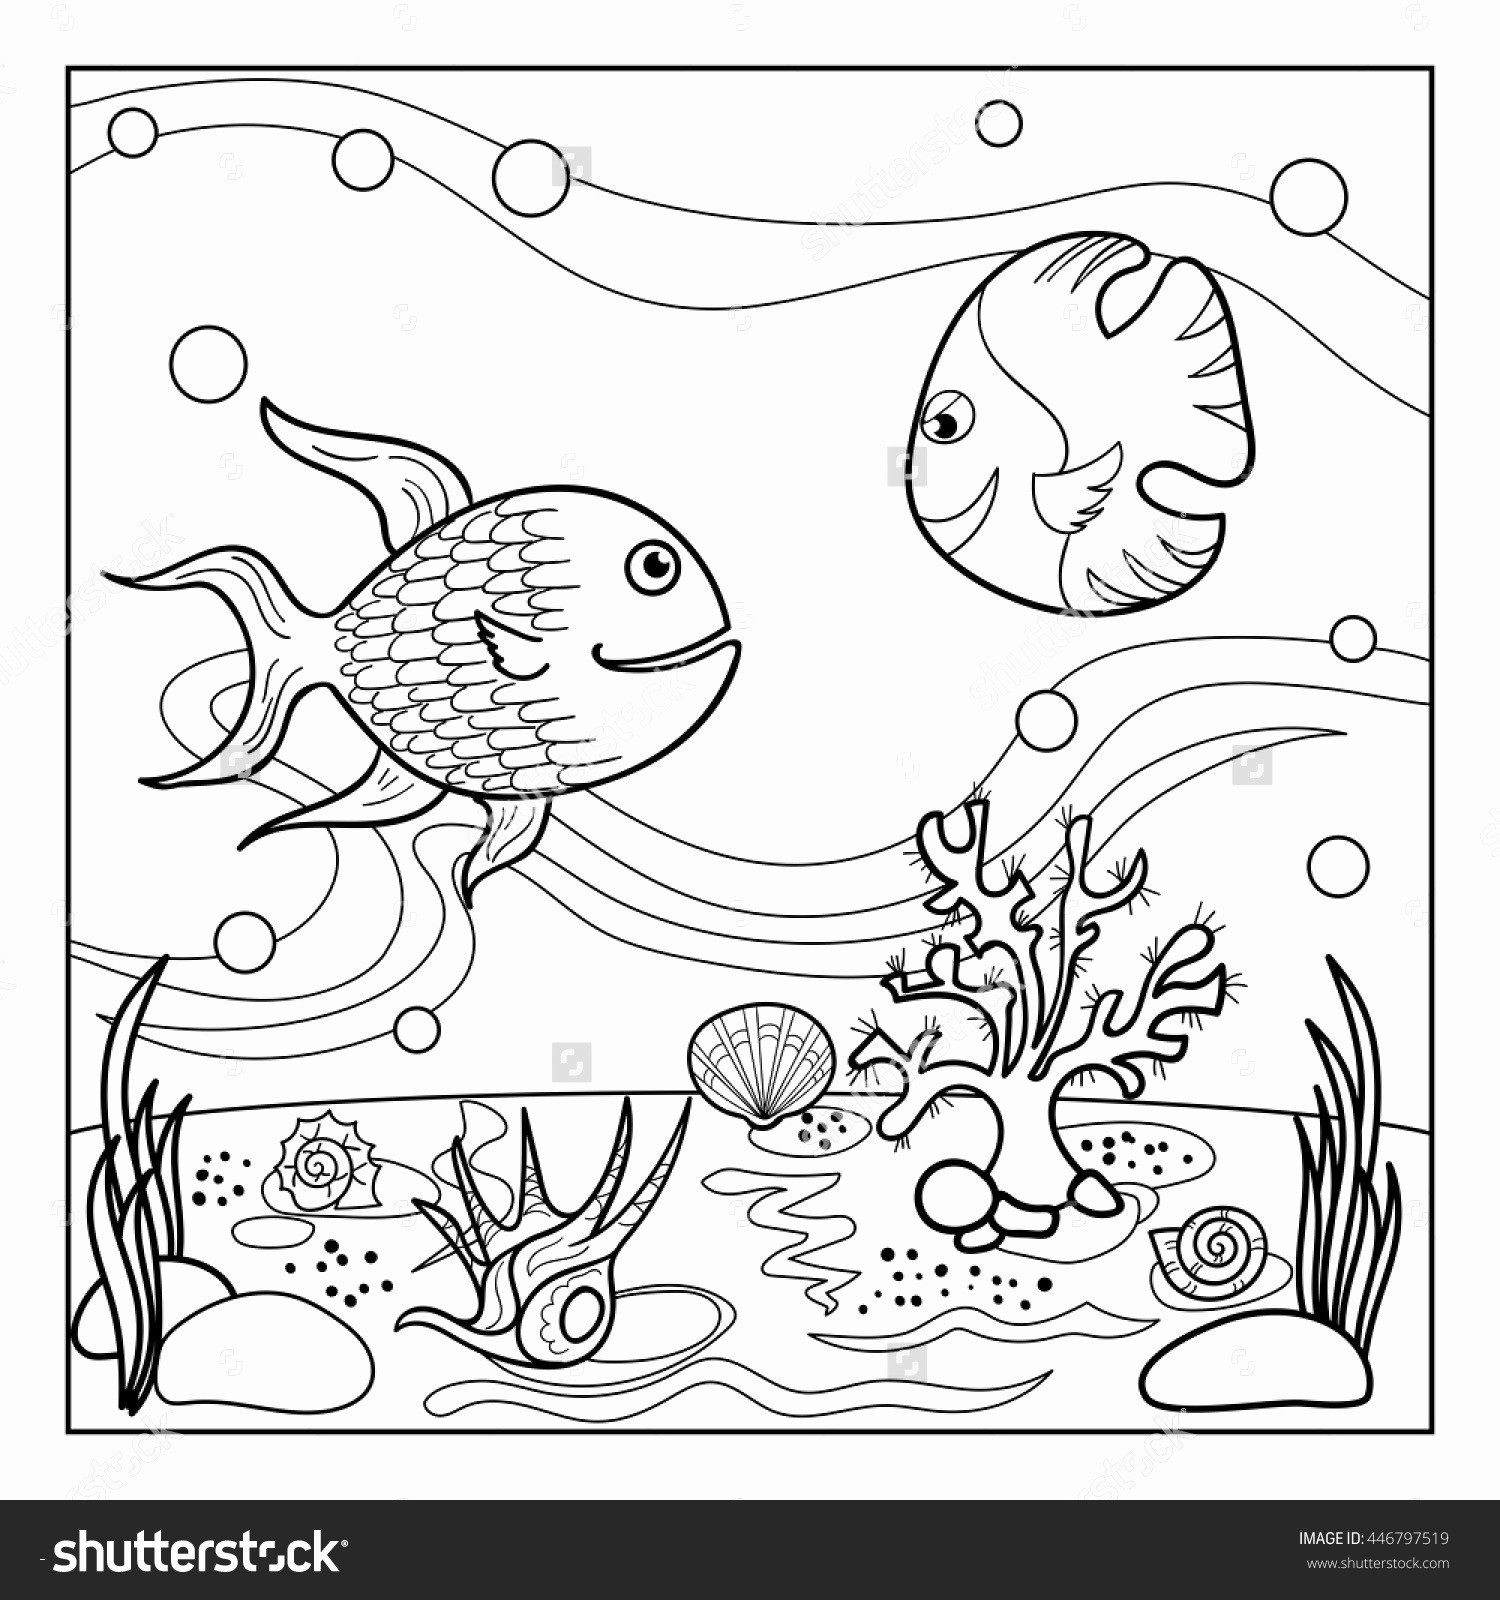 Feathers Coloring Pages Printable